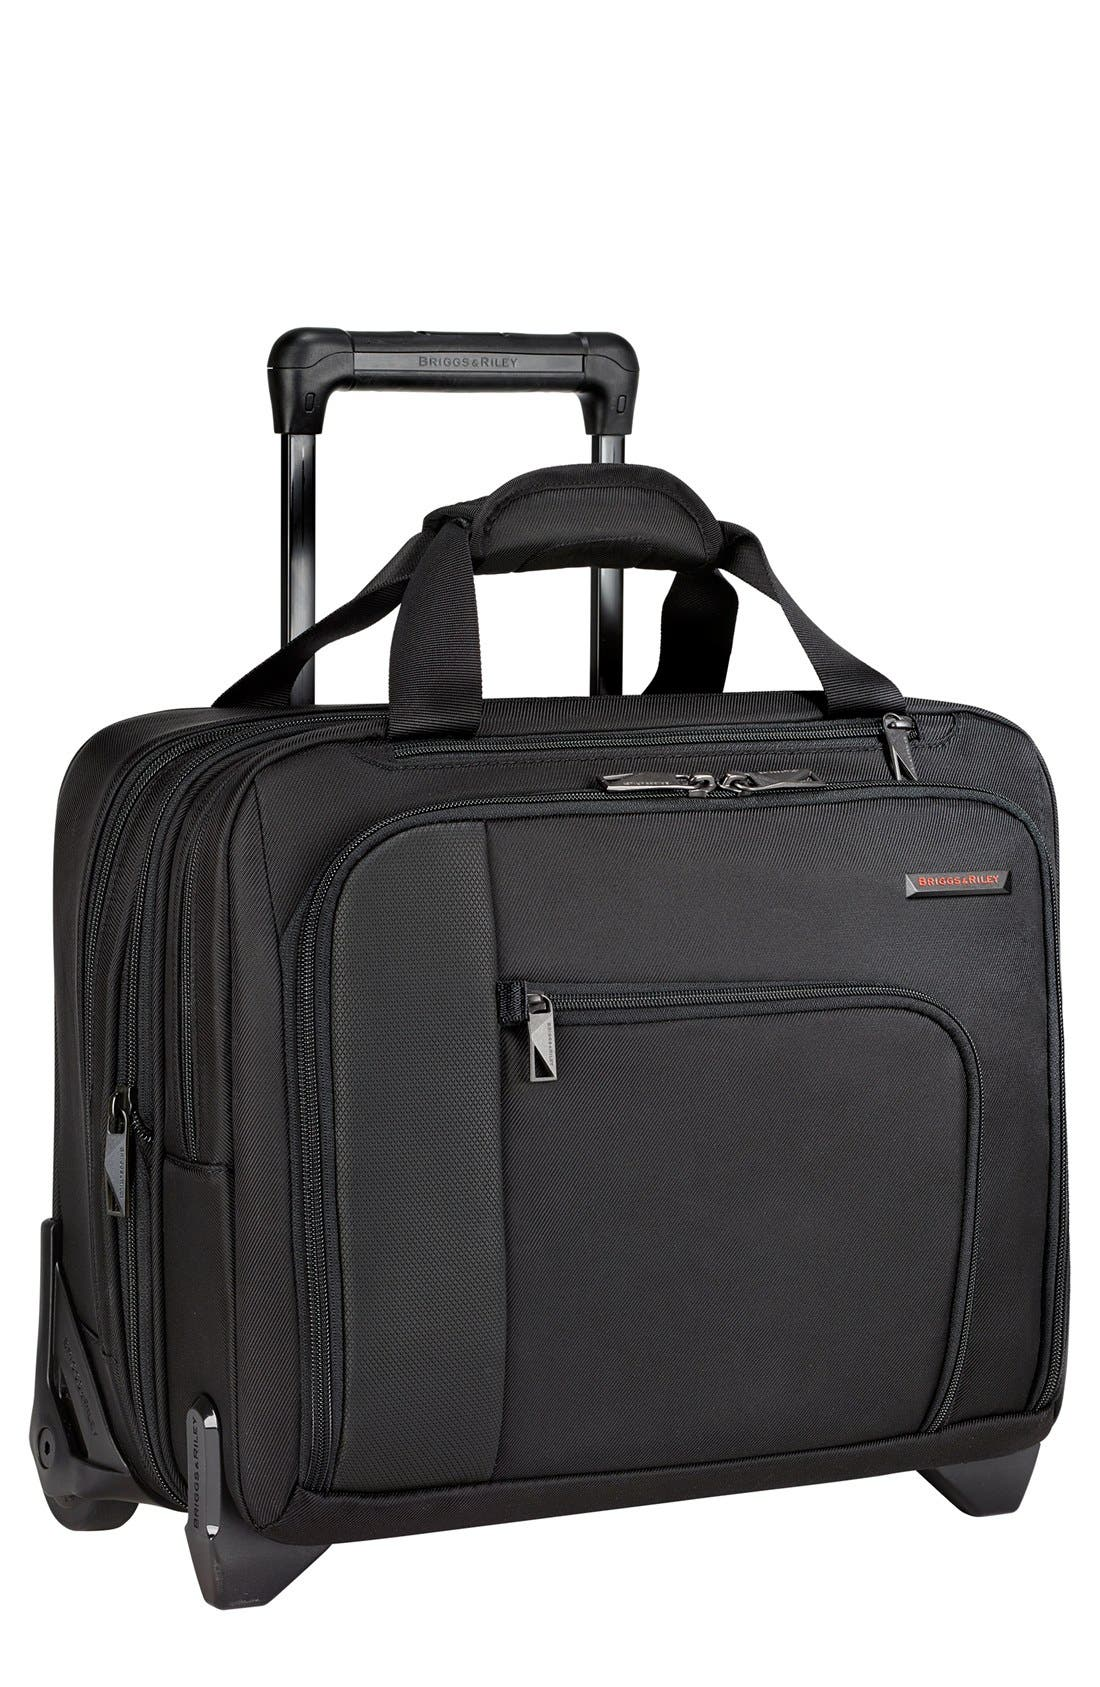 BRIGGS & RILEY Verb - Propel Rolling Briefcase, Main, color, 001